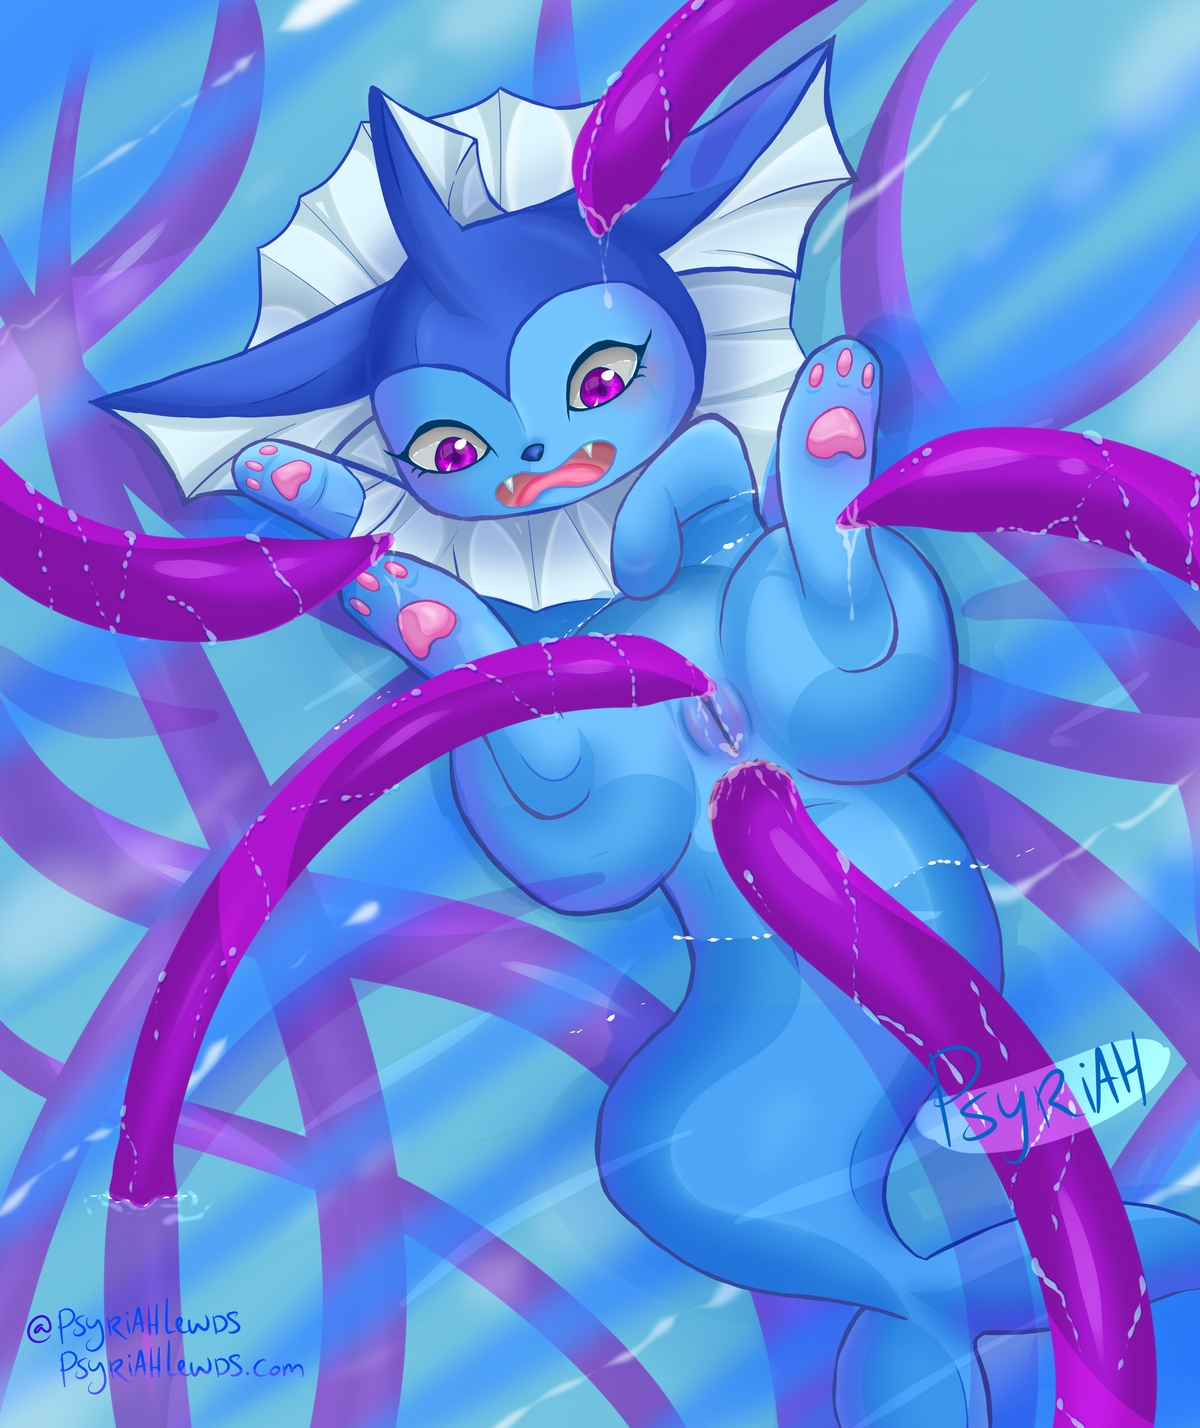 Vaporeon in the water